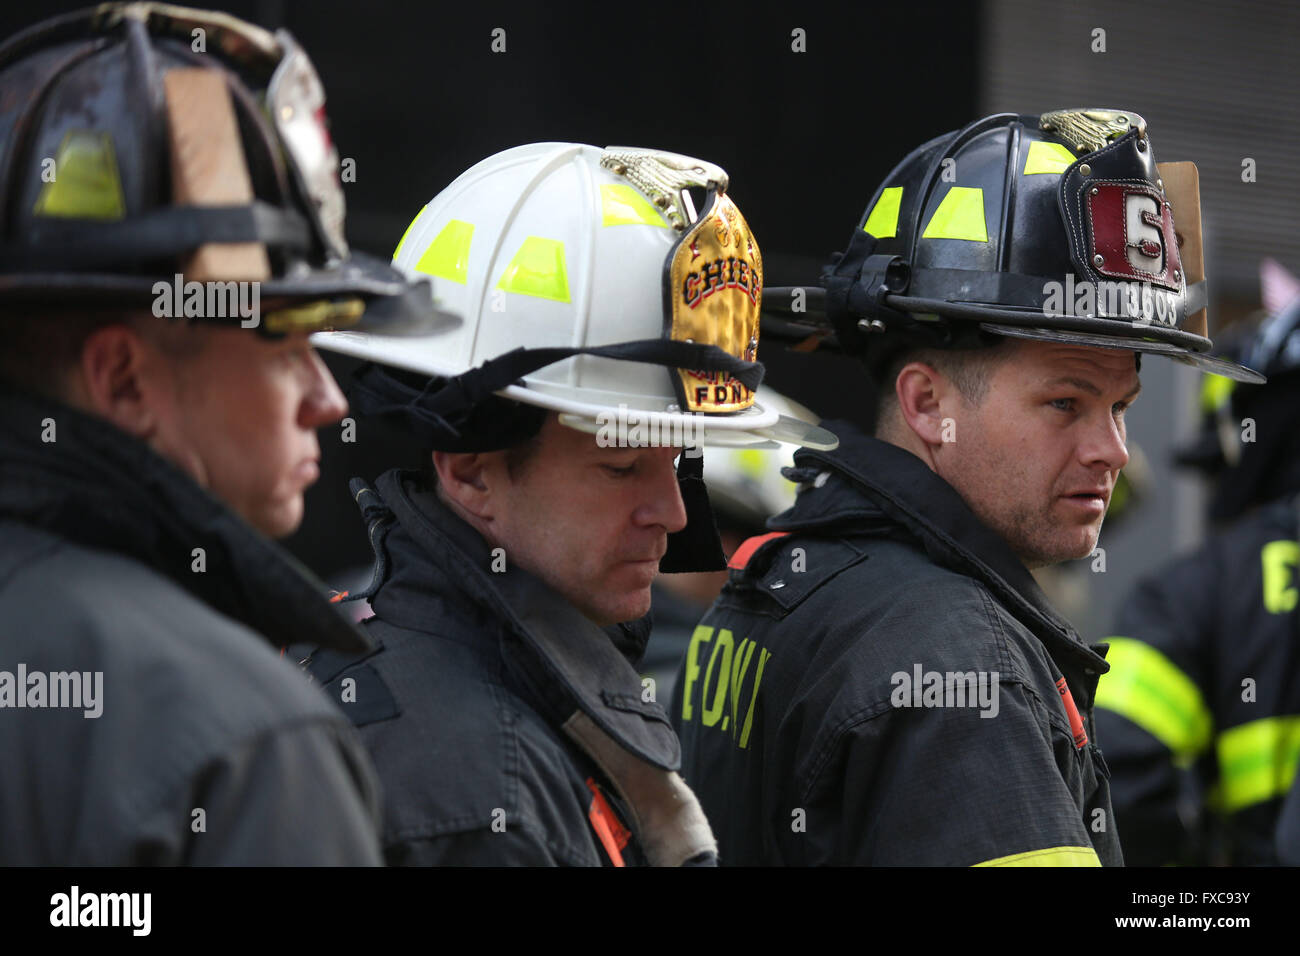 New York City, NY, USA. 13th Mar, 2016. FDNY firefighters prepare for their stair climb. 343 Firefighters from across - Stock Image